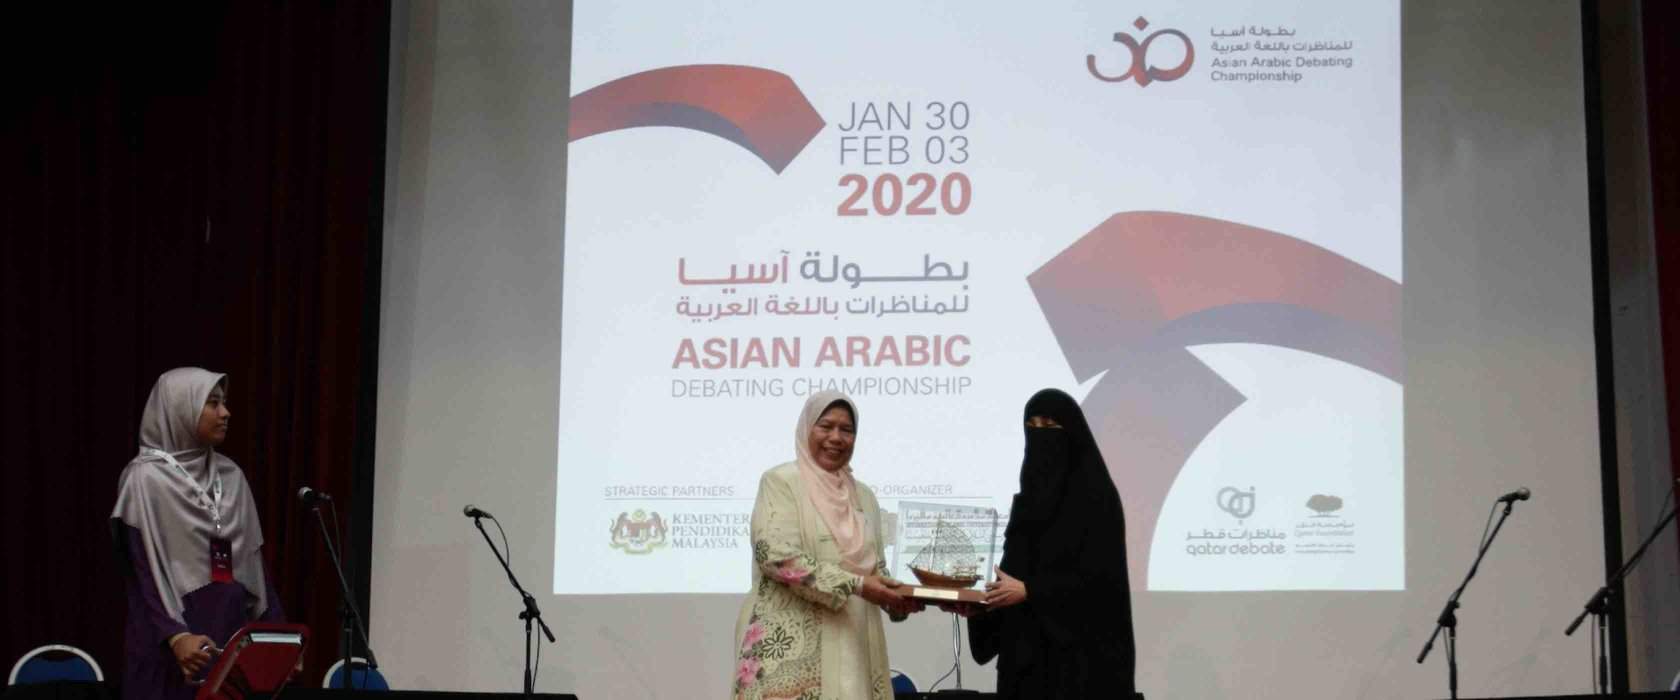 QF member launches Asian Arabic Debating Championship in Malaysia